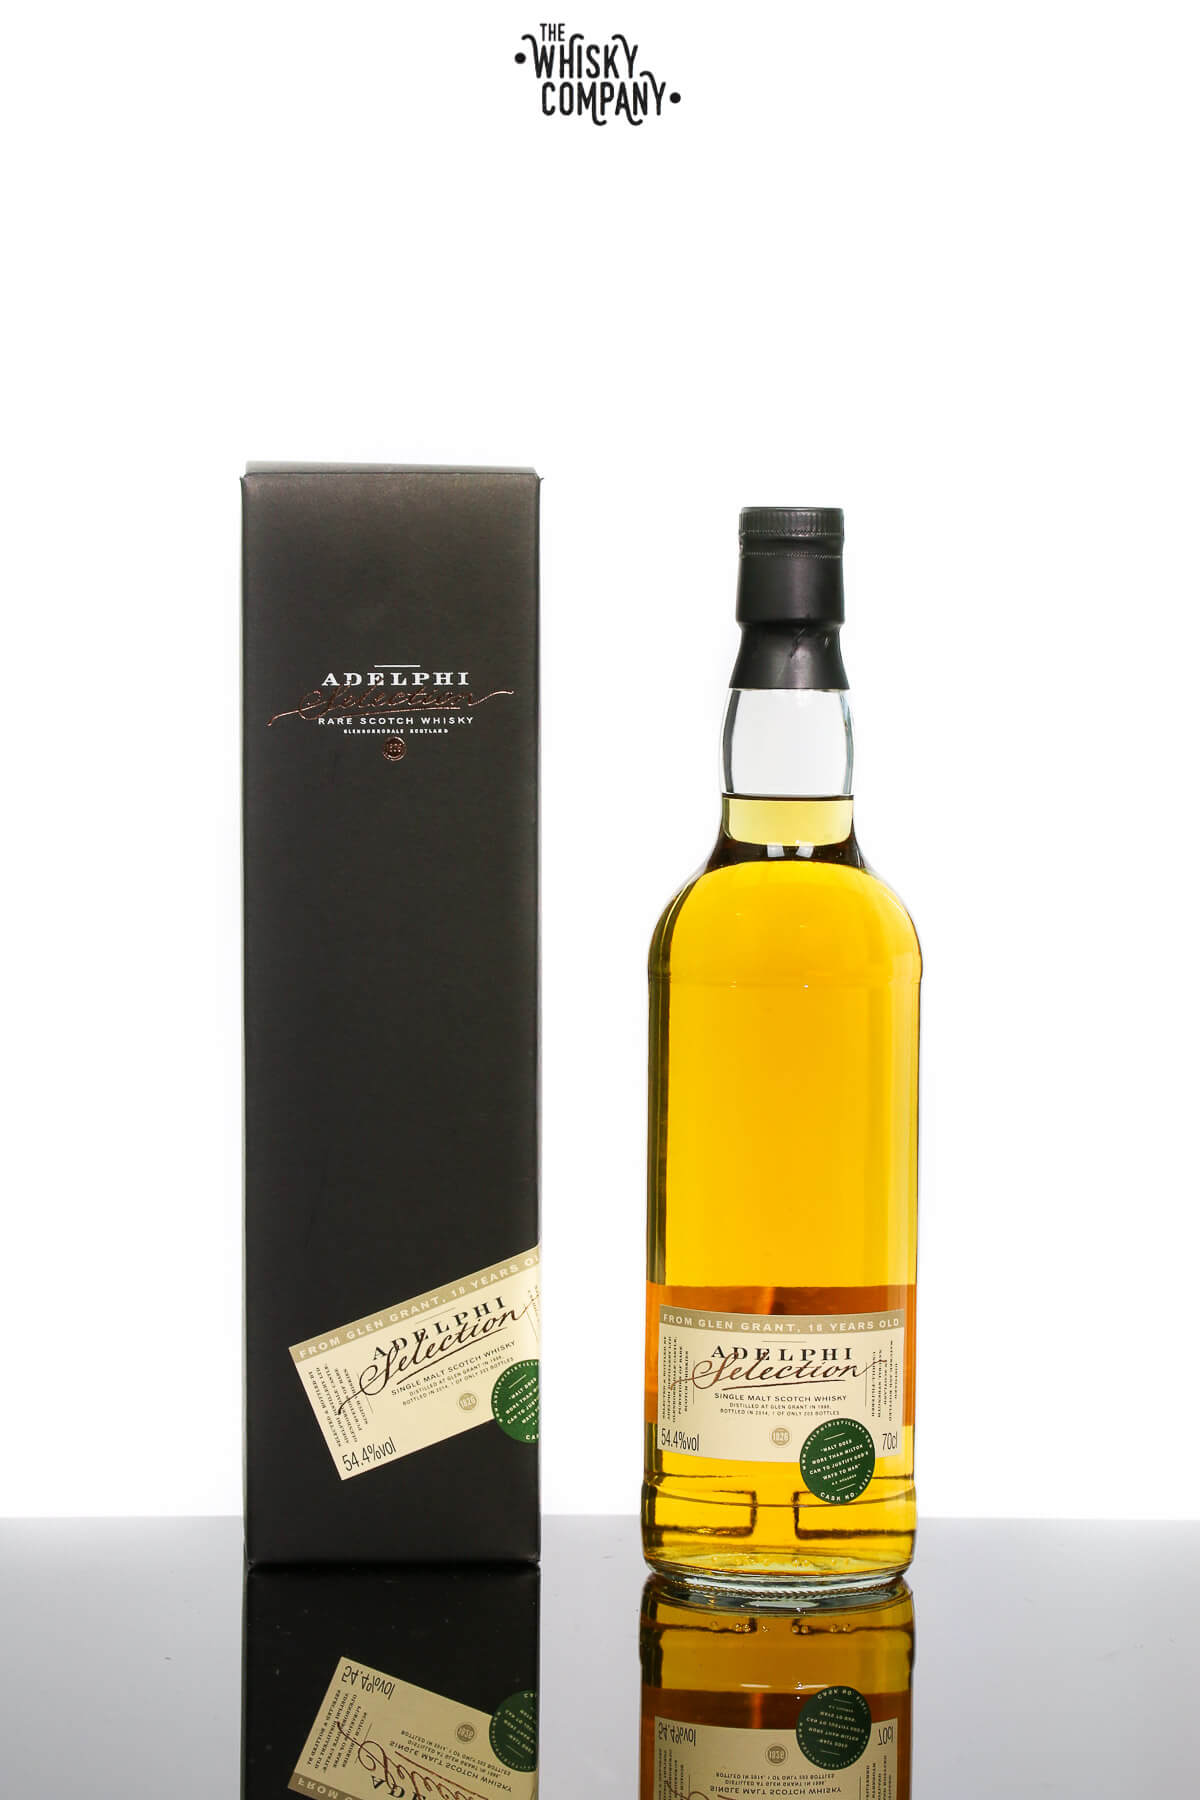 Adelphi 1996 Glen Grant 18 Years Old Single Cask Single Malt Scotch Whisky